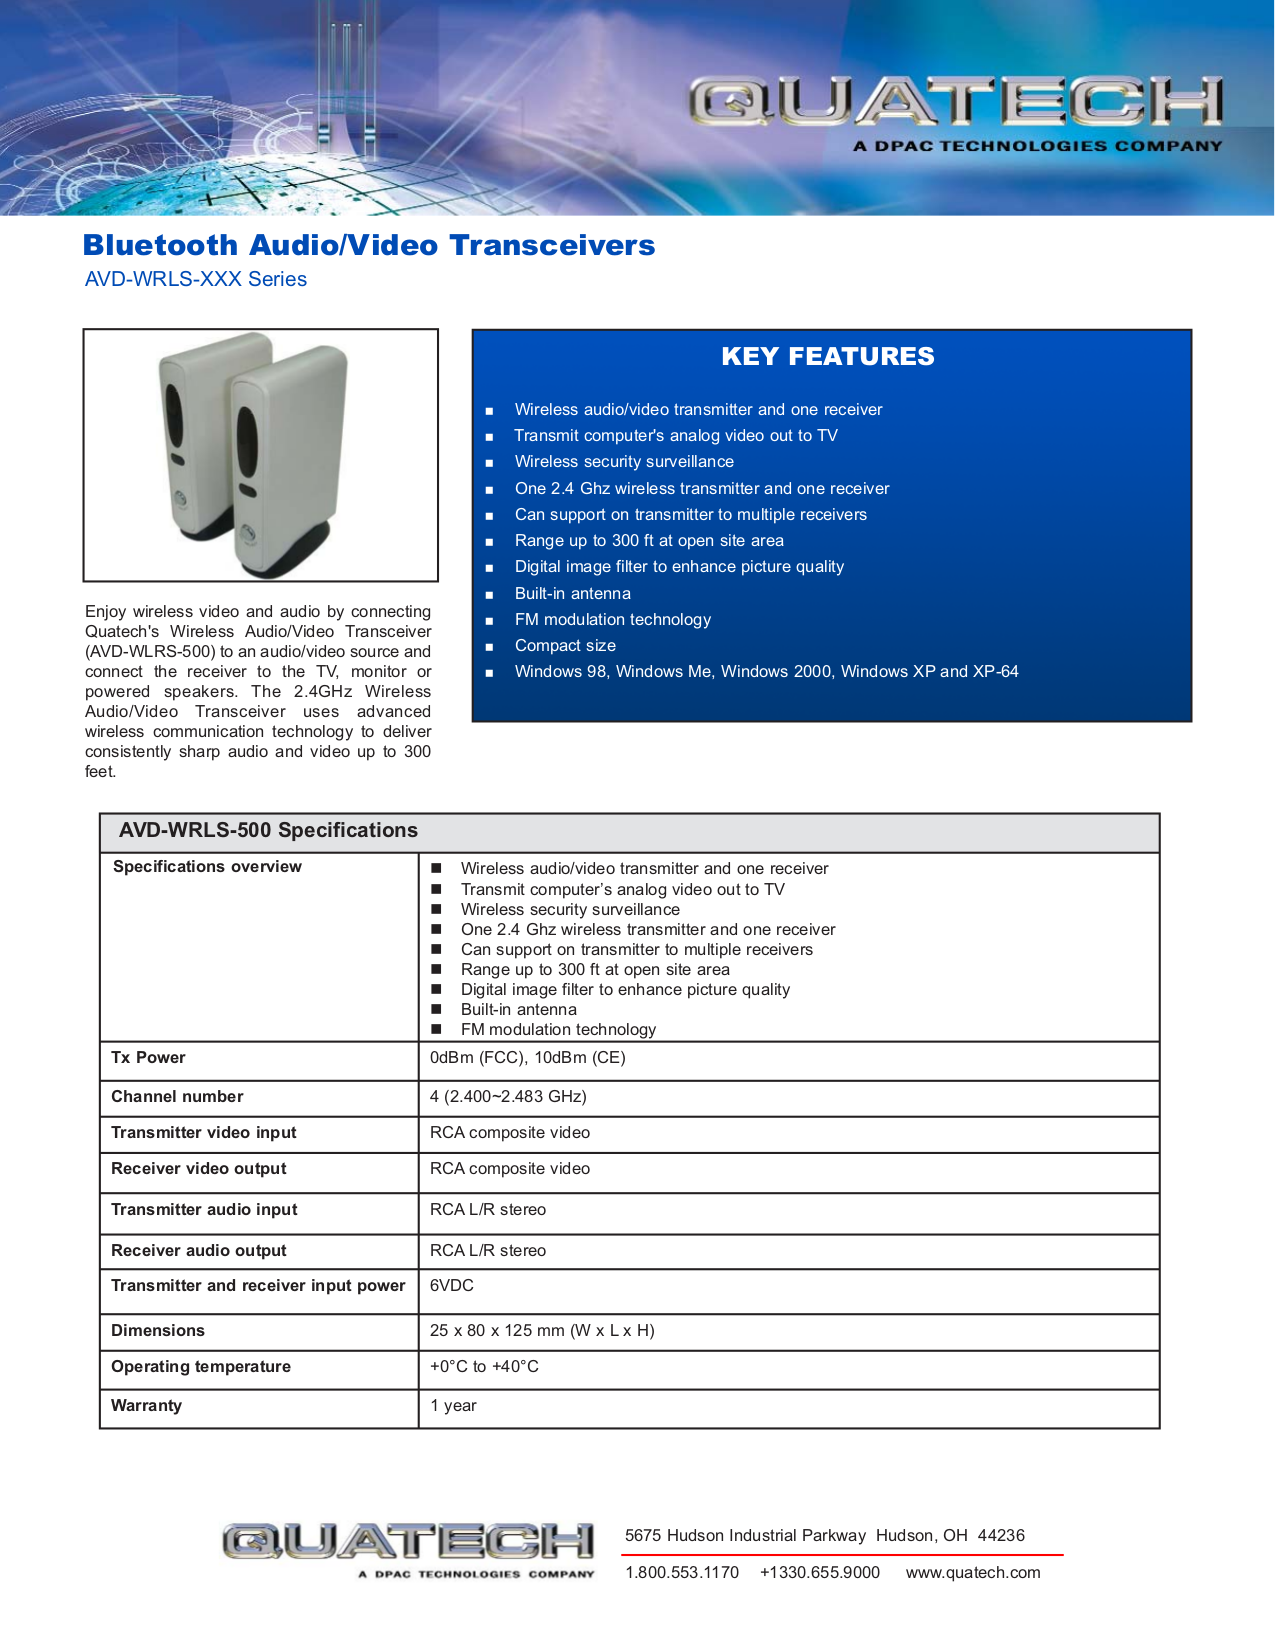 pdf for Quatech Other AVD-WLRS-500 Transceivers manual